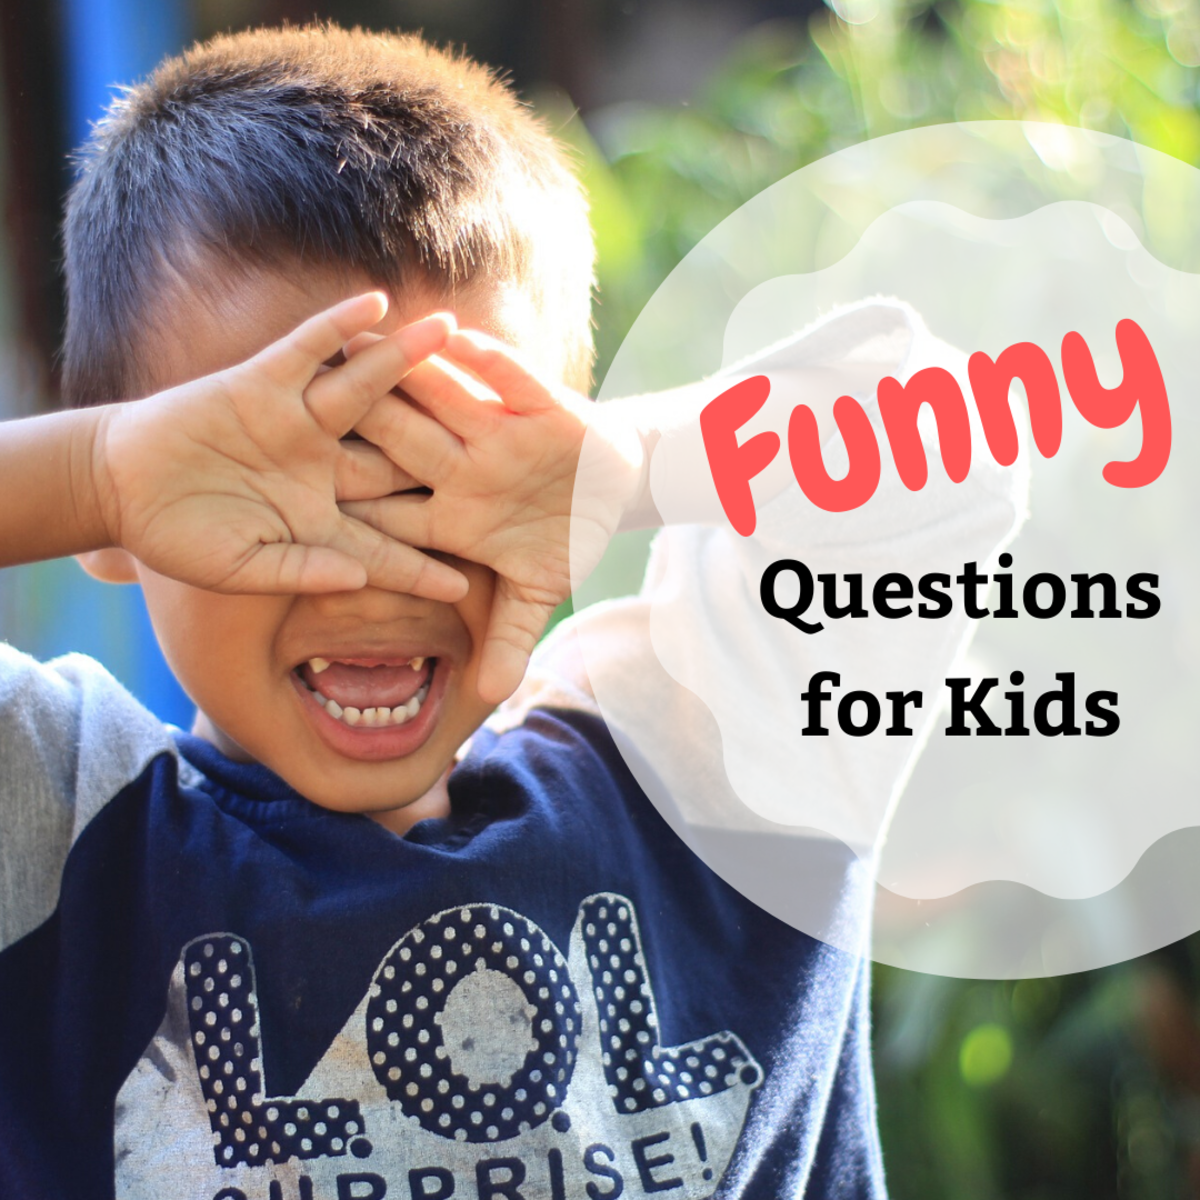 Start up a conversation with the kid in your life by using these fun and funny questions!